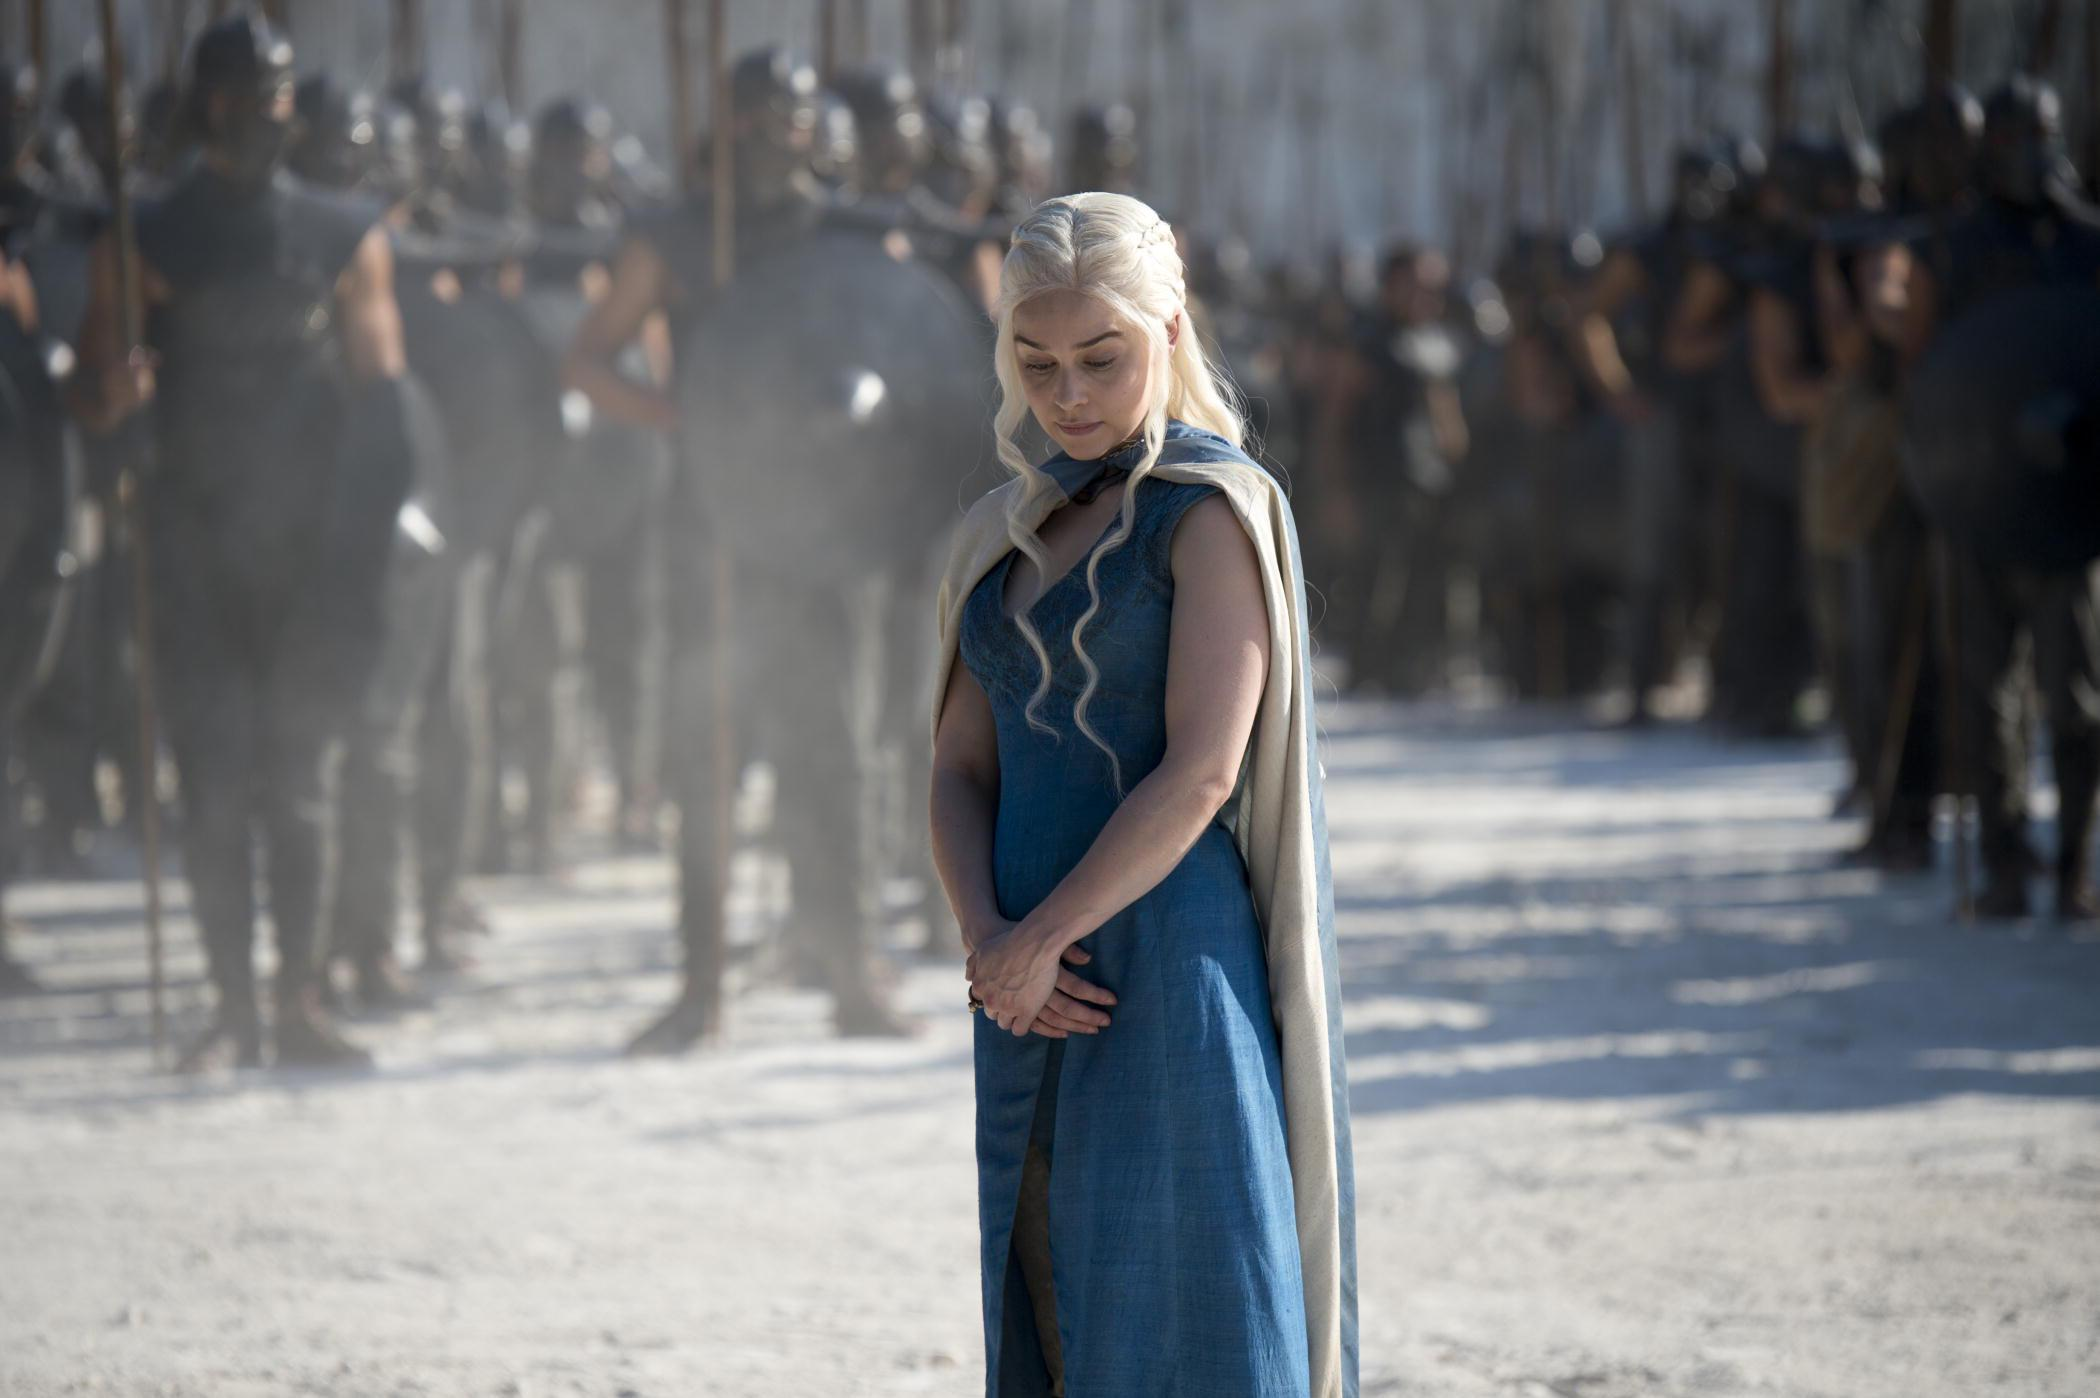 Game of Thrones season 8: New HBO trailer shows Winterfell